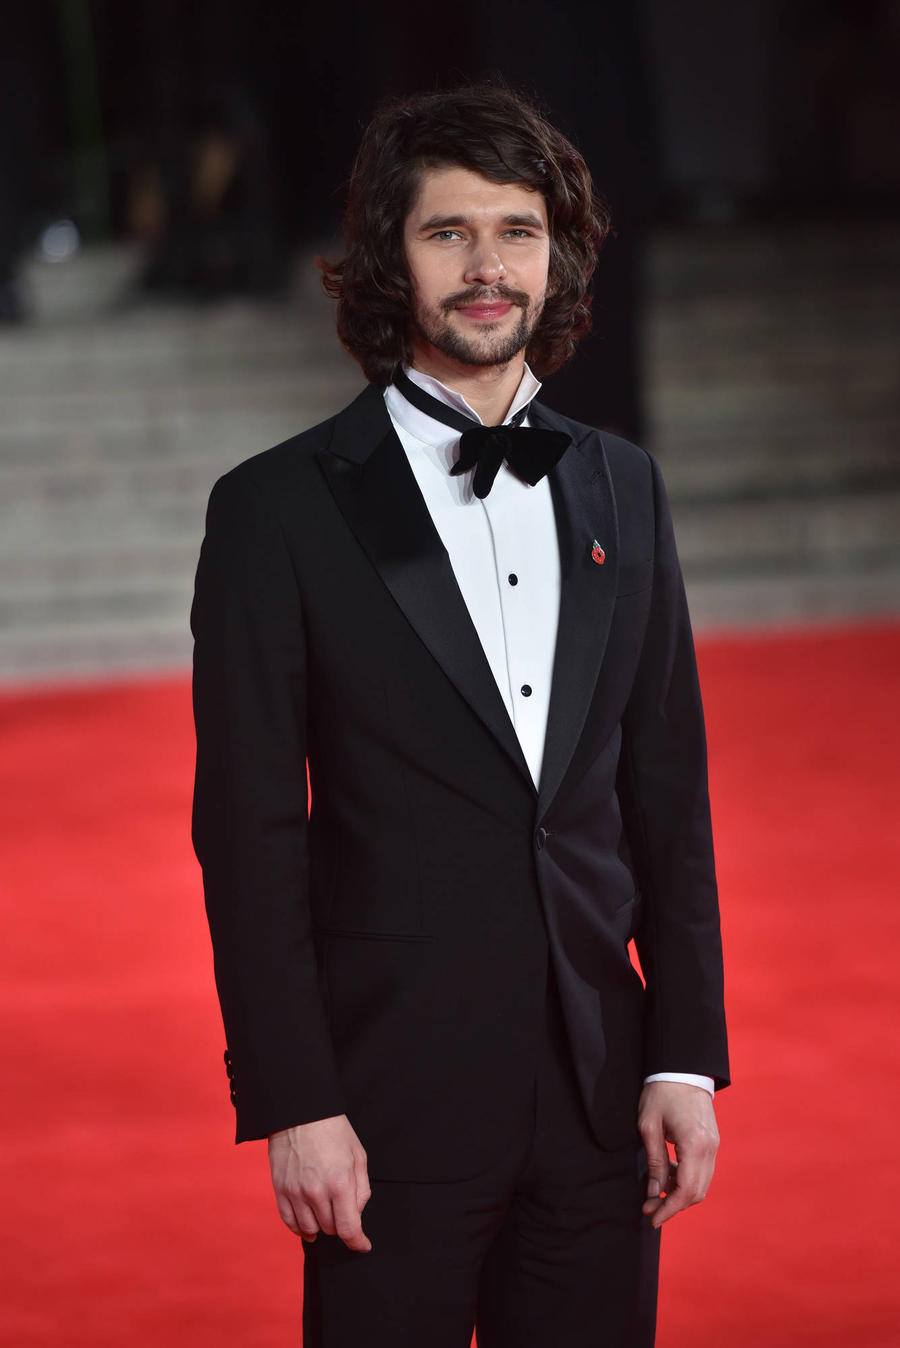 Ben Whishaw Is Bookmakers' Frontrunner To Take On Doctor Who Role